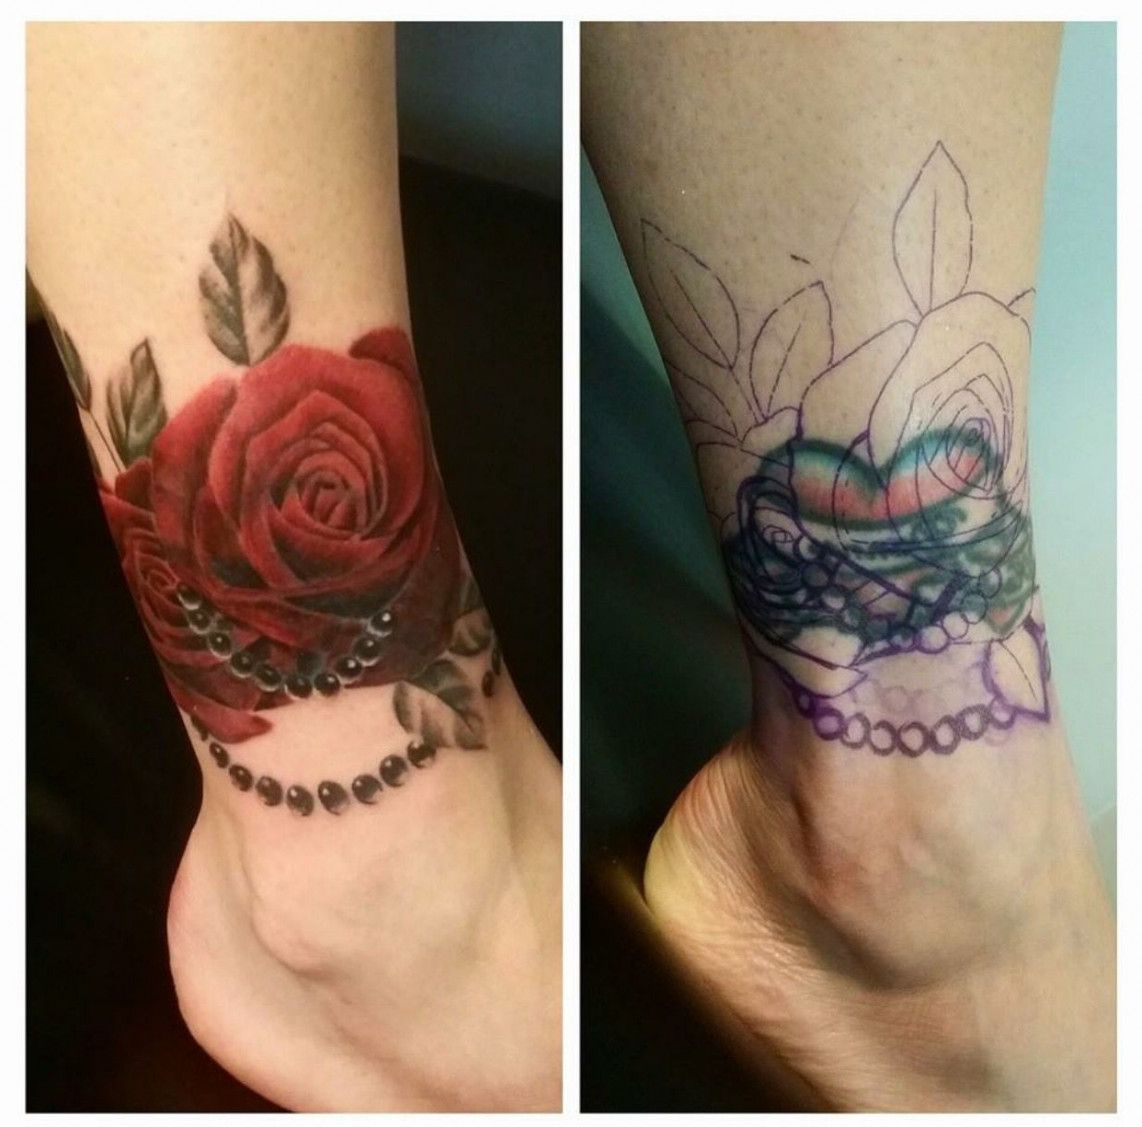 The Worst Advices Weve Heard For Ankle Tattoo Cover Up Designs Ankle Tattoo Cover Up Designs Ankle Tattoo Cover Up Cover Tattoo Ankle Tattoo Designs